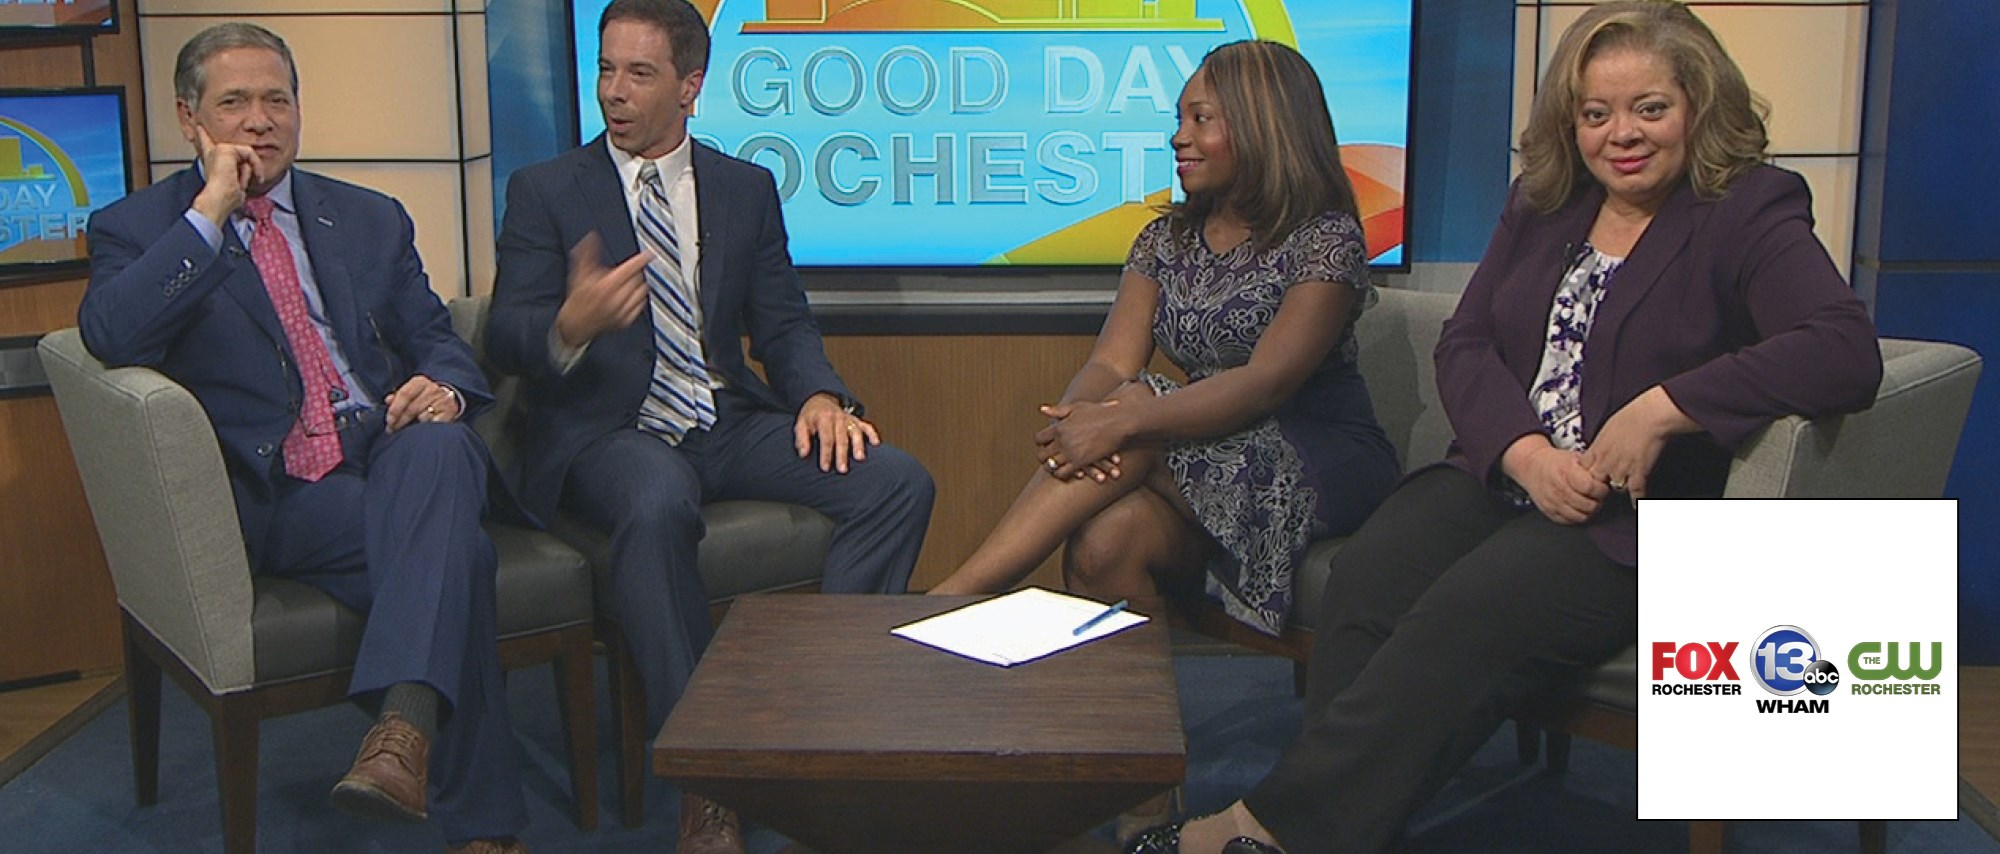 WHAM Good Day Rochester Furniture